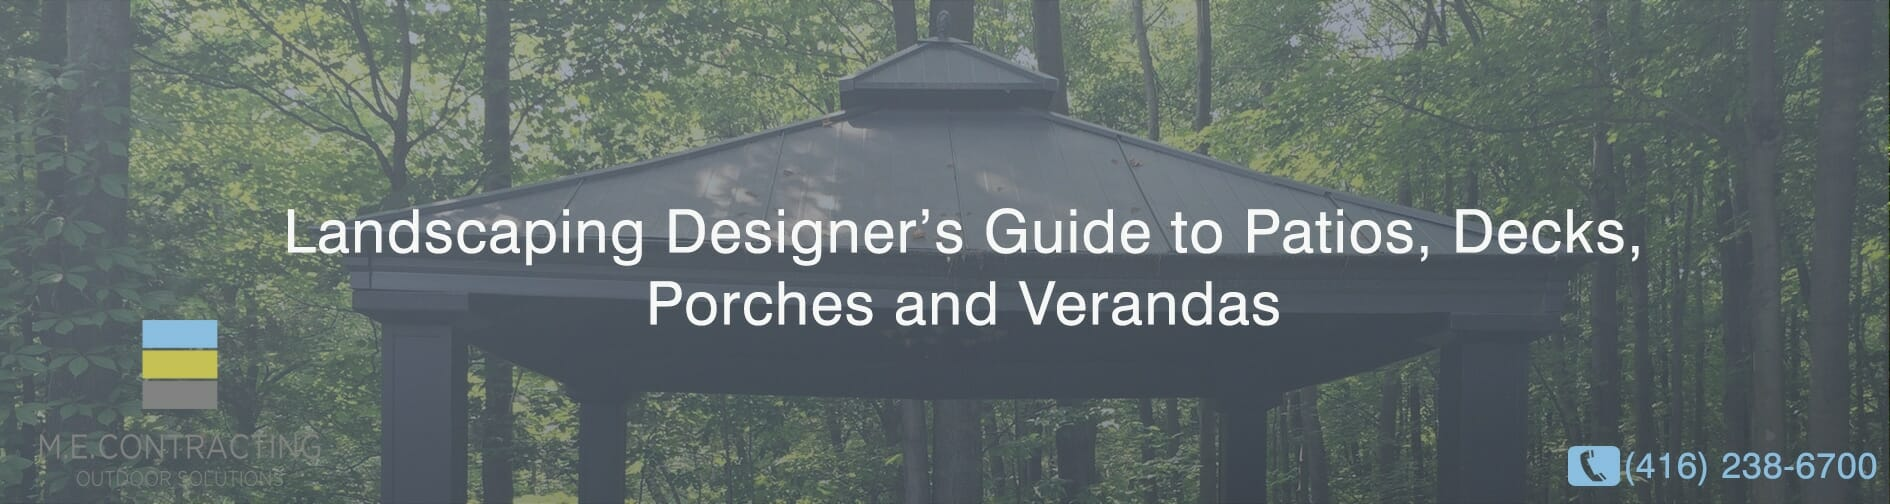 A Landscaping Designer's Guide to Patios, Decks, Porches and Verandas